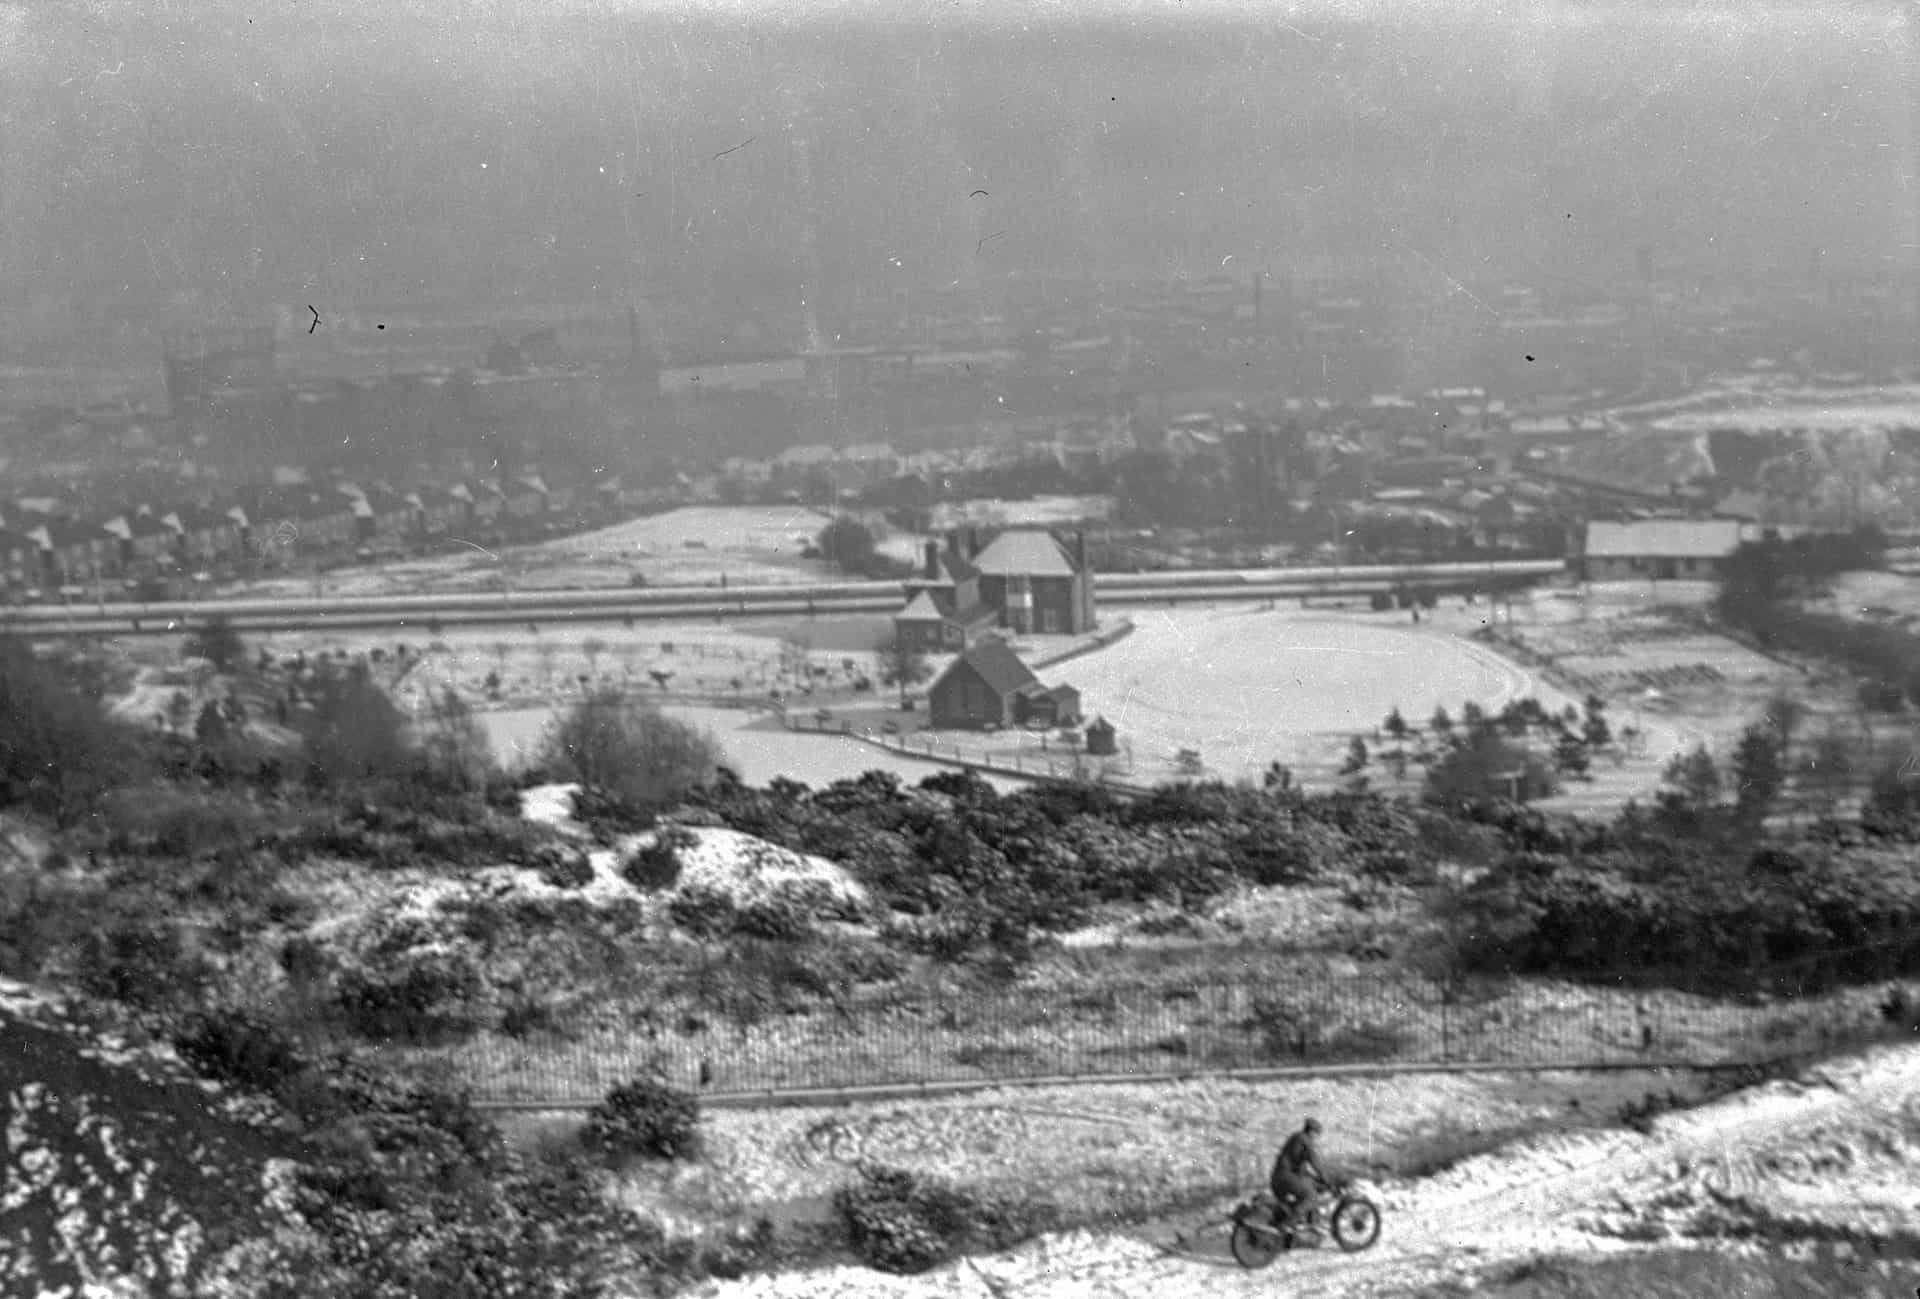 A winter's day in 1951 taken from Bury Hill. A scramble motorbike practicing with the Edale Estate in the background and the A4123 Wolverhampton New Rd.